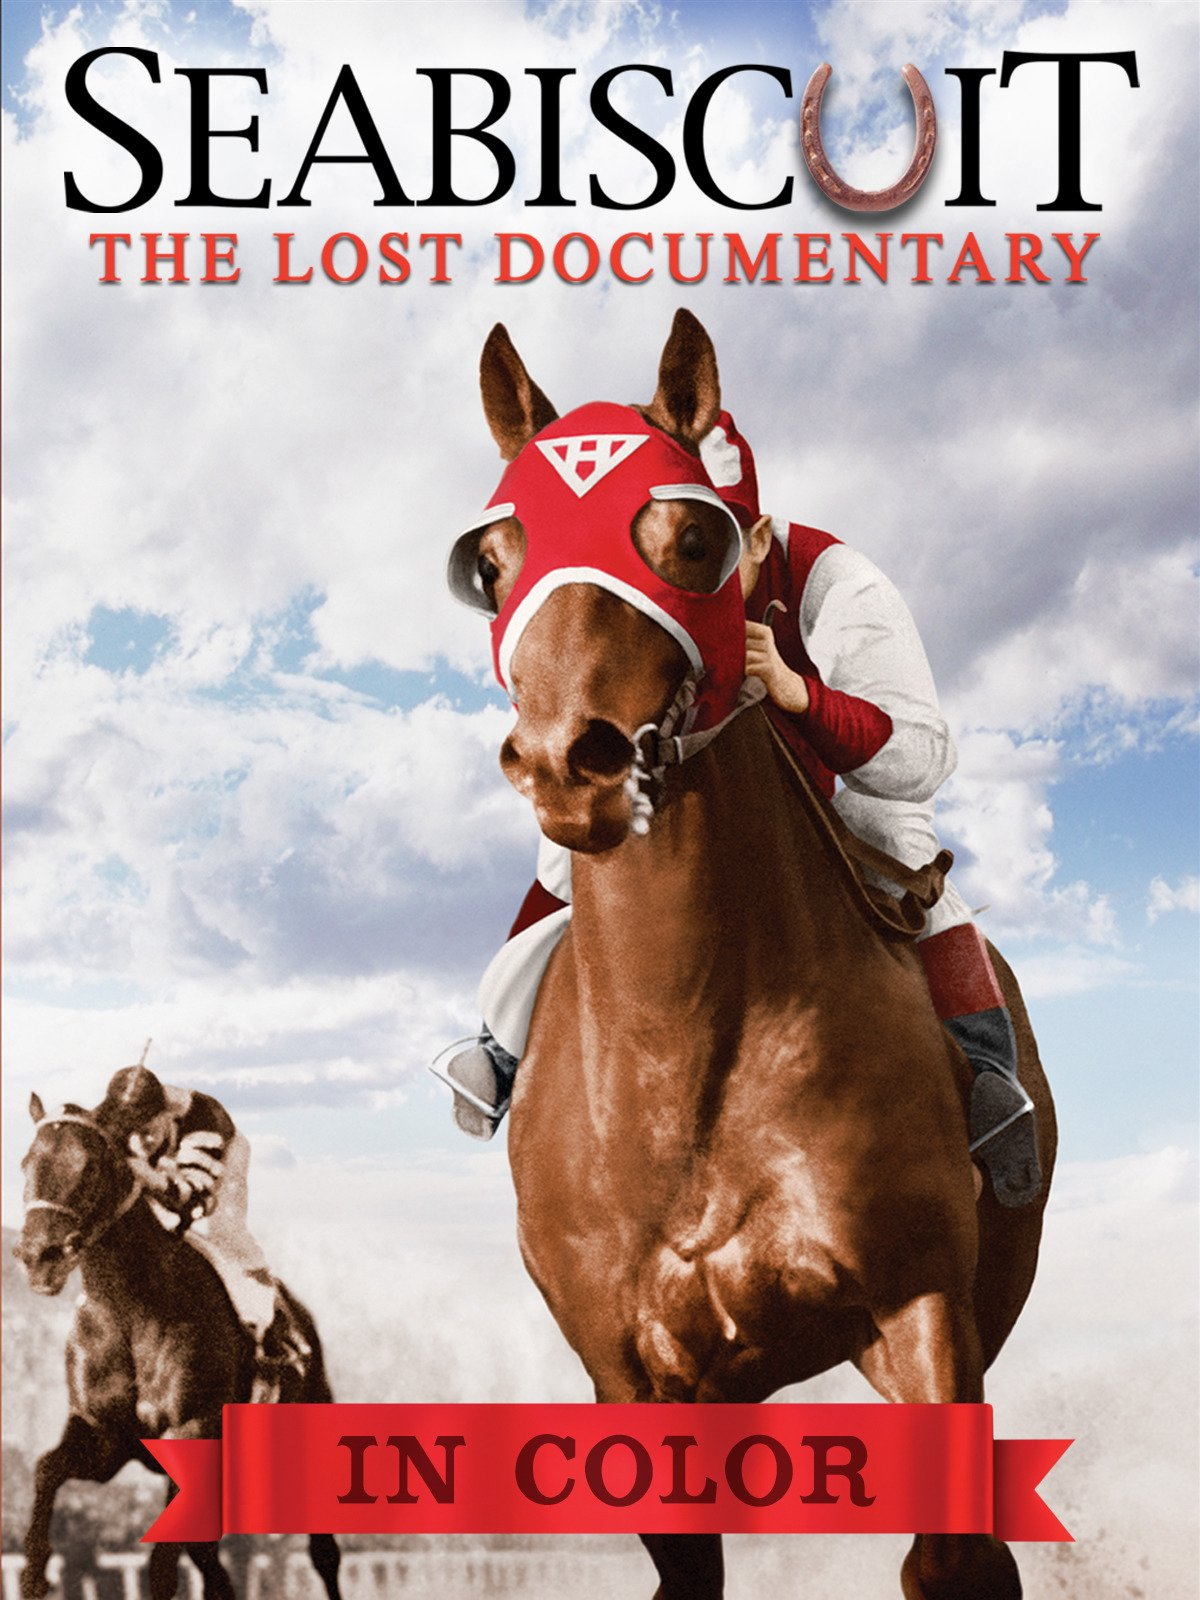 Seabiscuit The Lost Documentary (in Color)